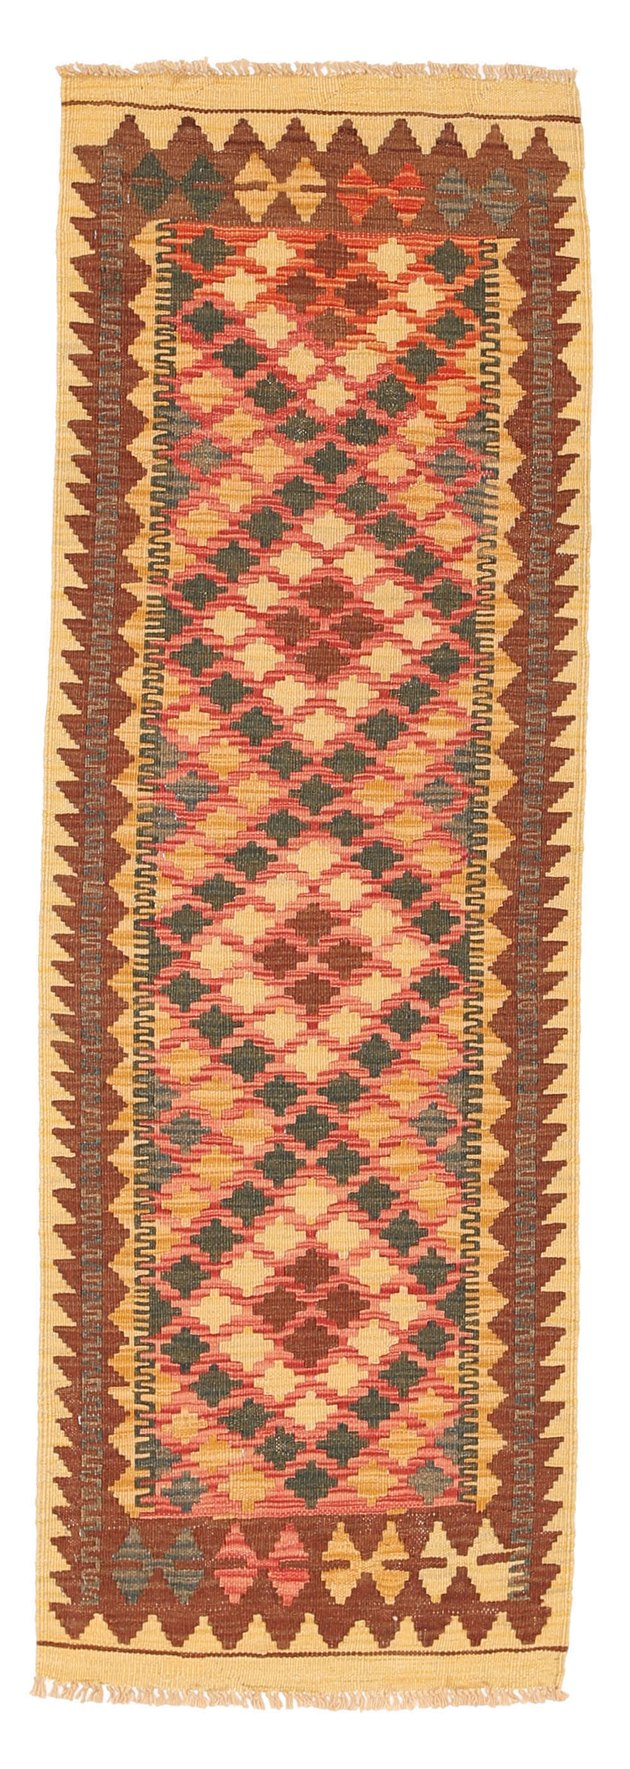 Kilim runner with light brown, pale peach, and orange hues